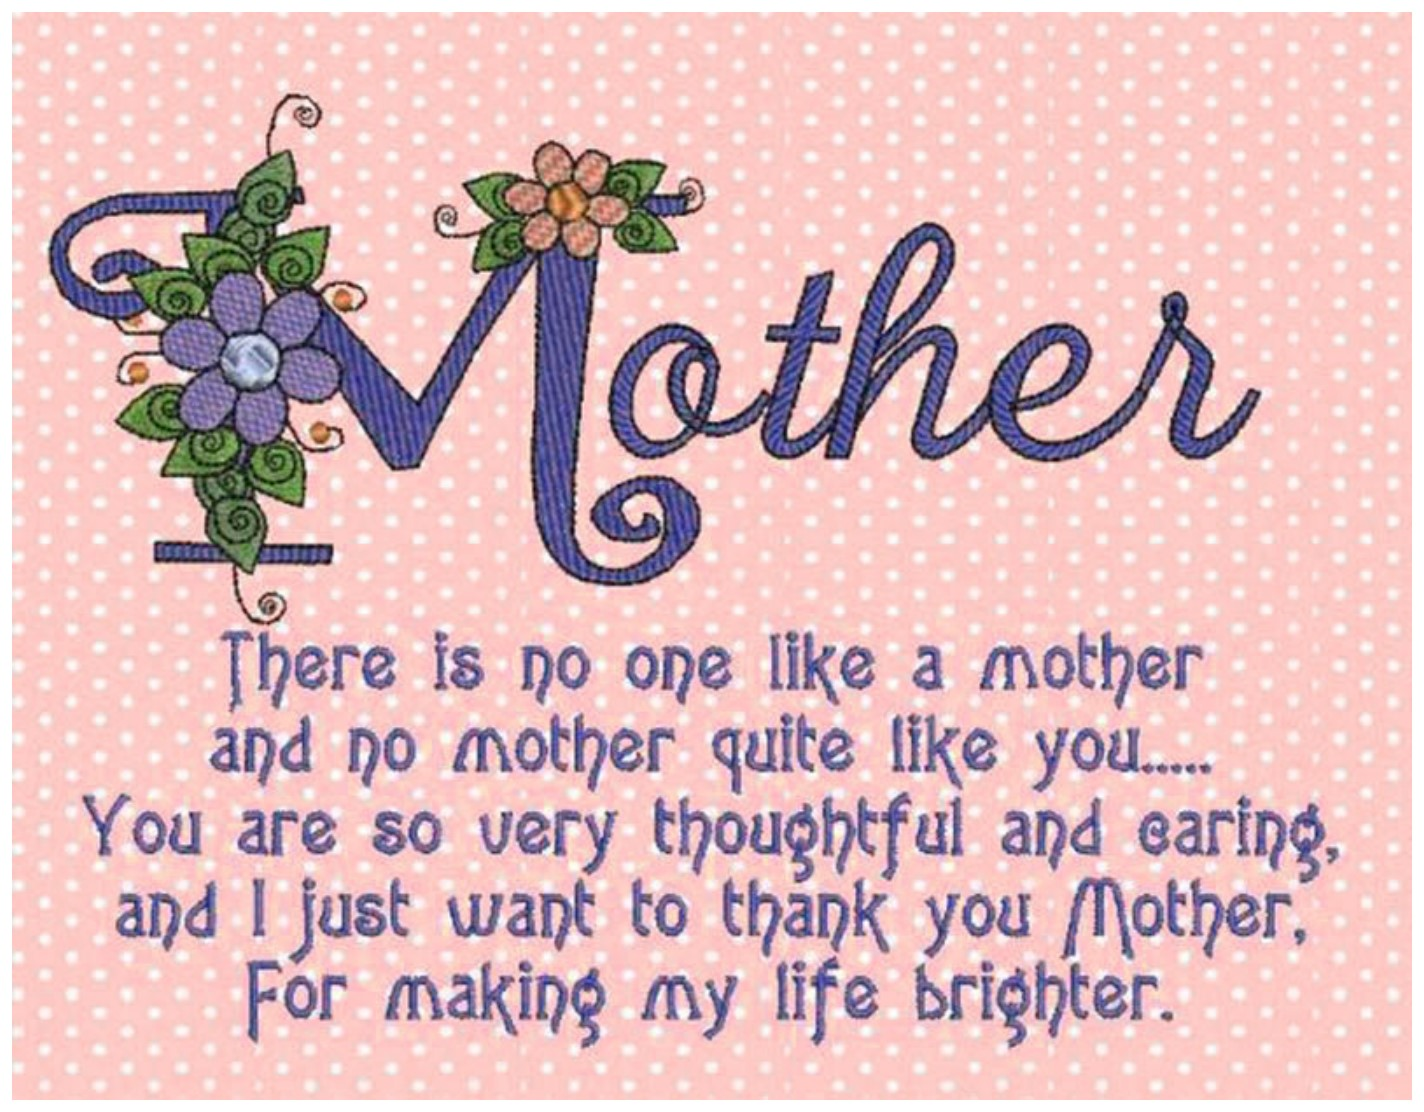 Happy MoHappy Mothers Day Images, Pics quoteshers Day Images And Quotes